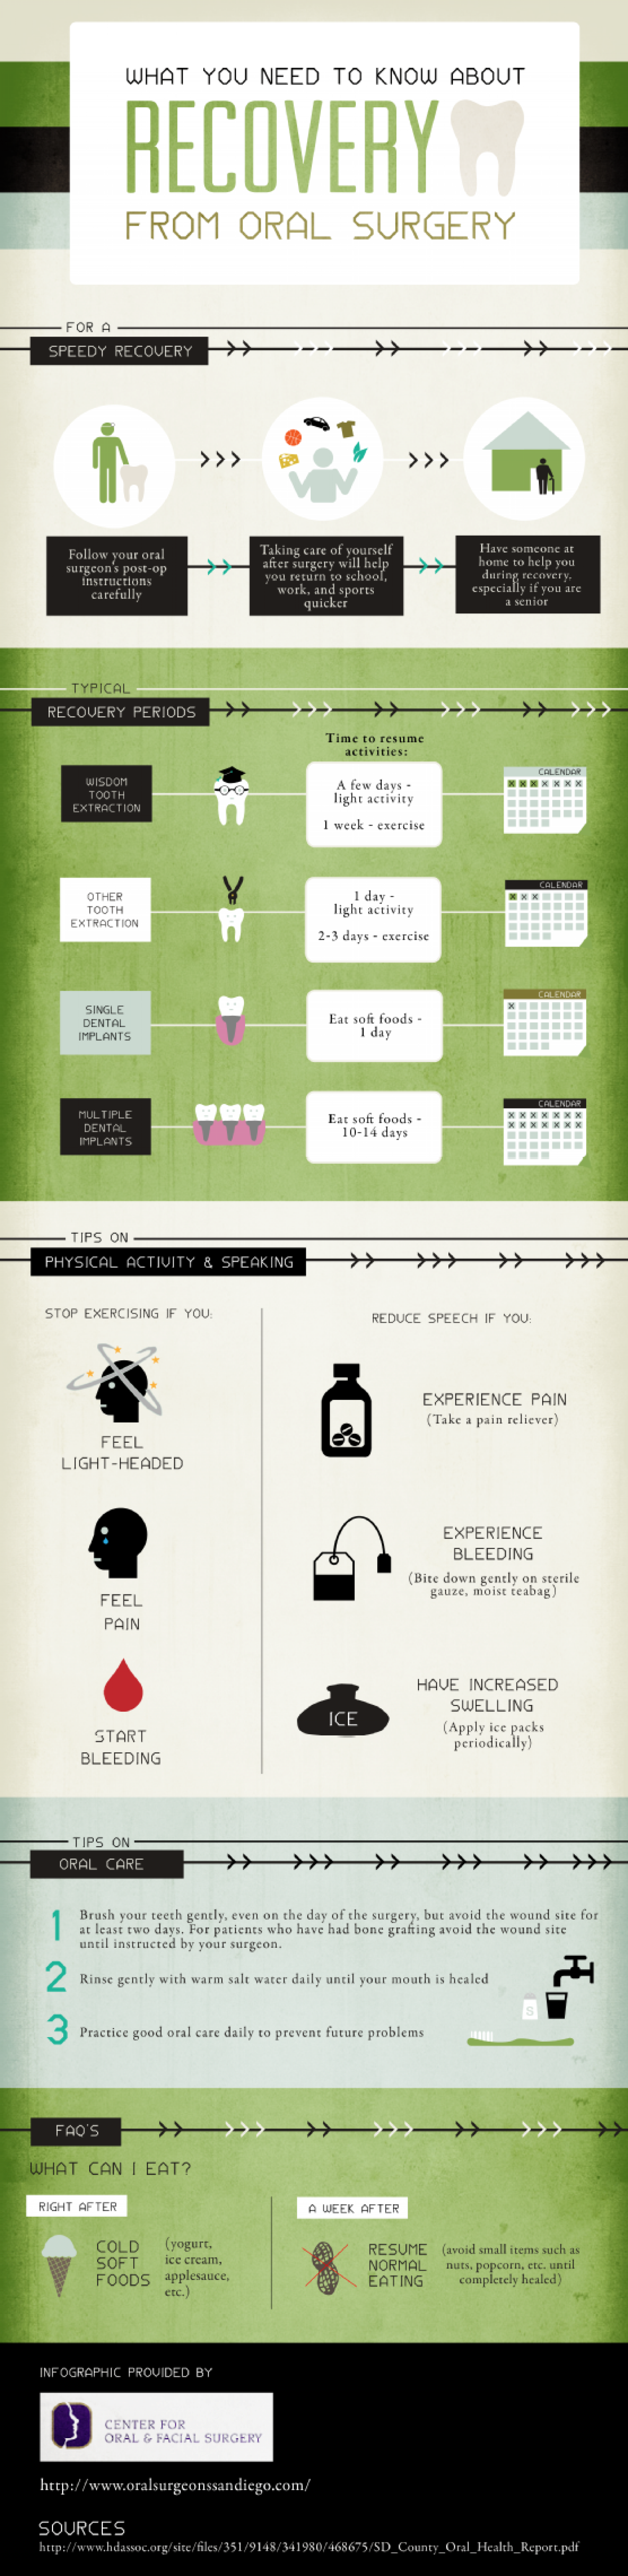 What You Need to Know about Recovery from Oral Surgery Infographic